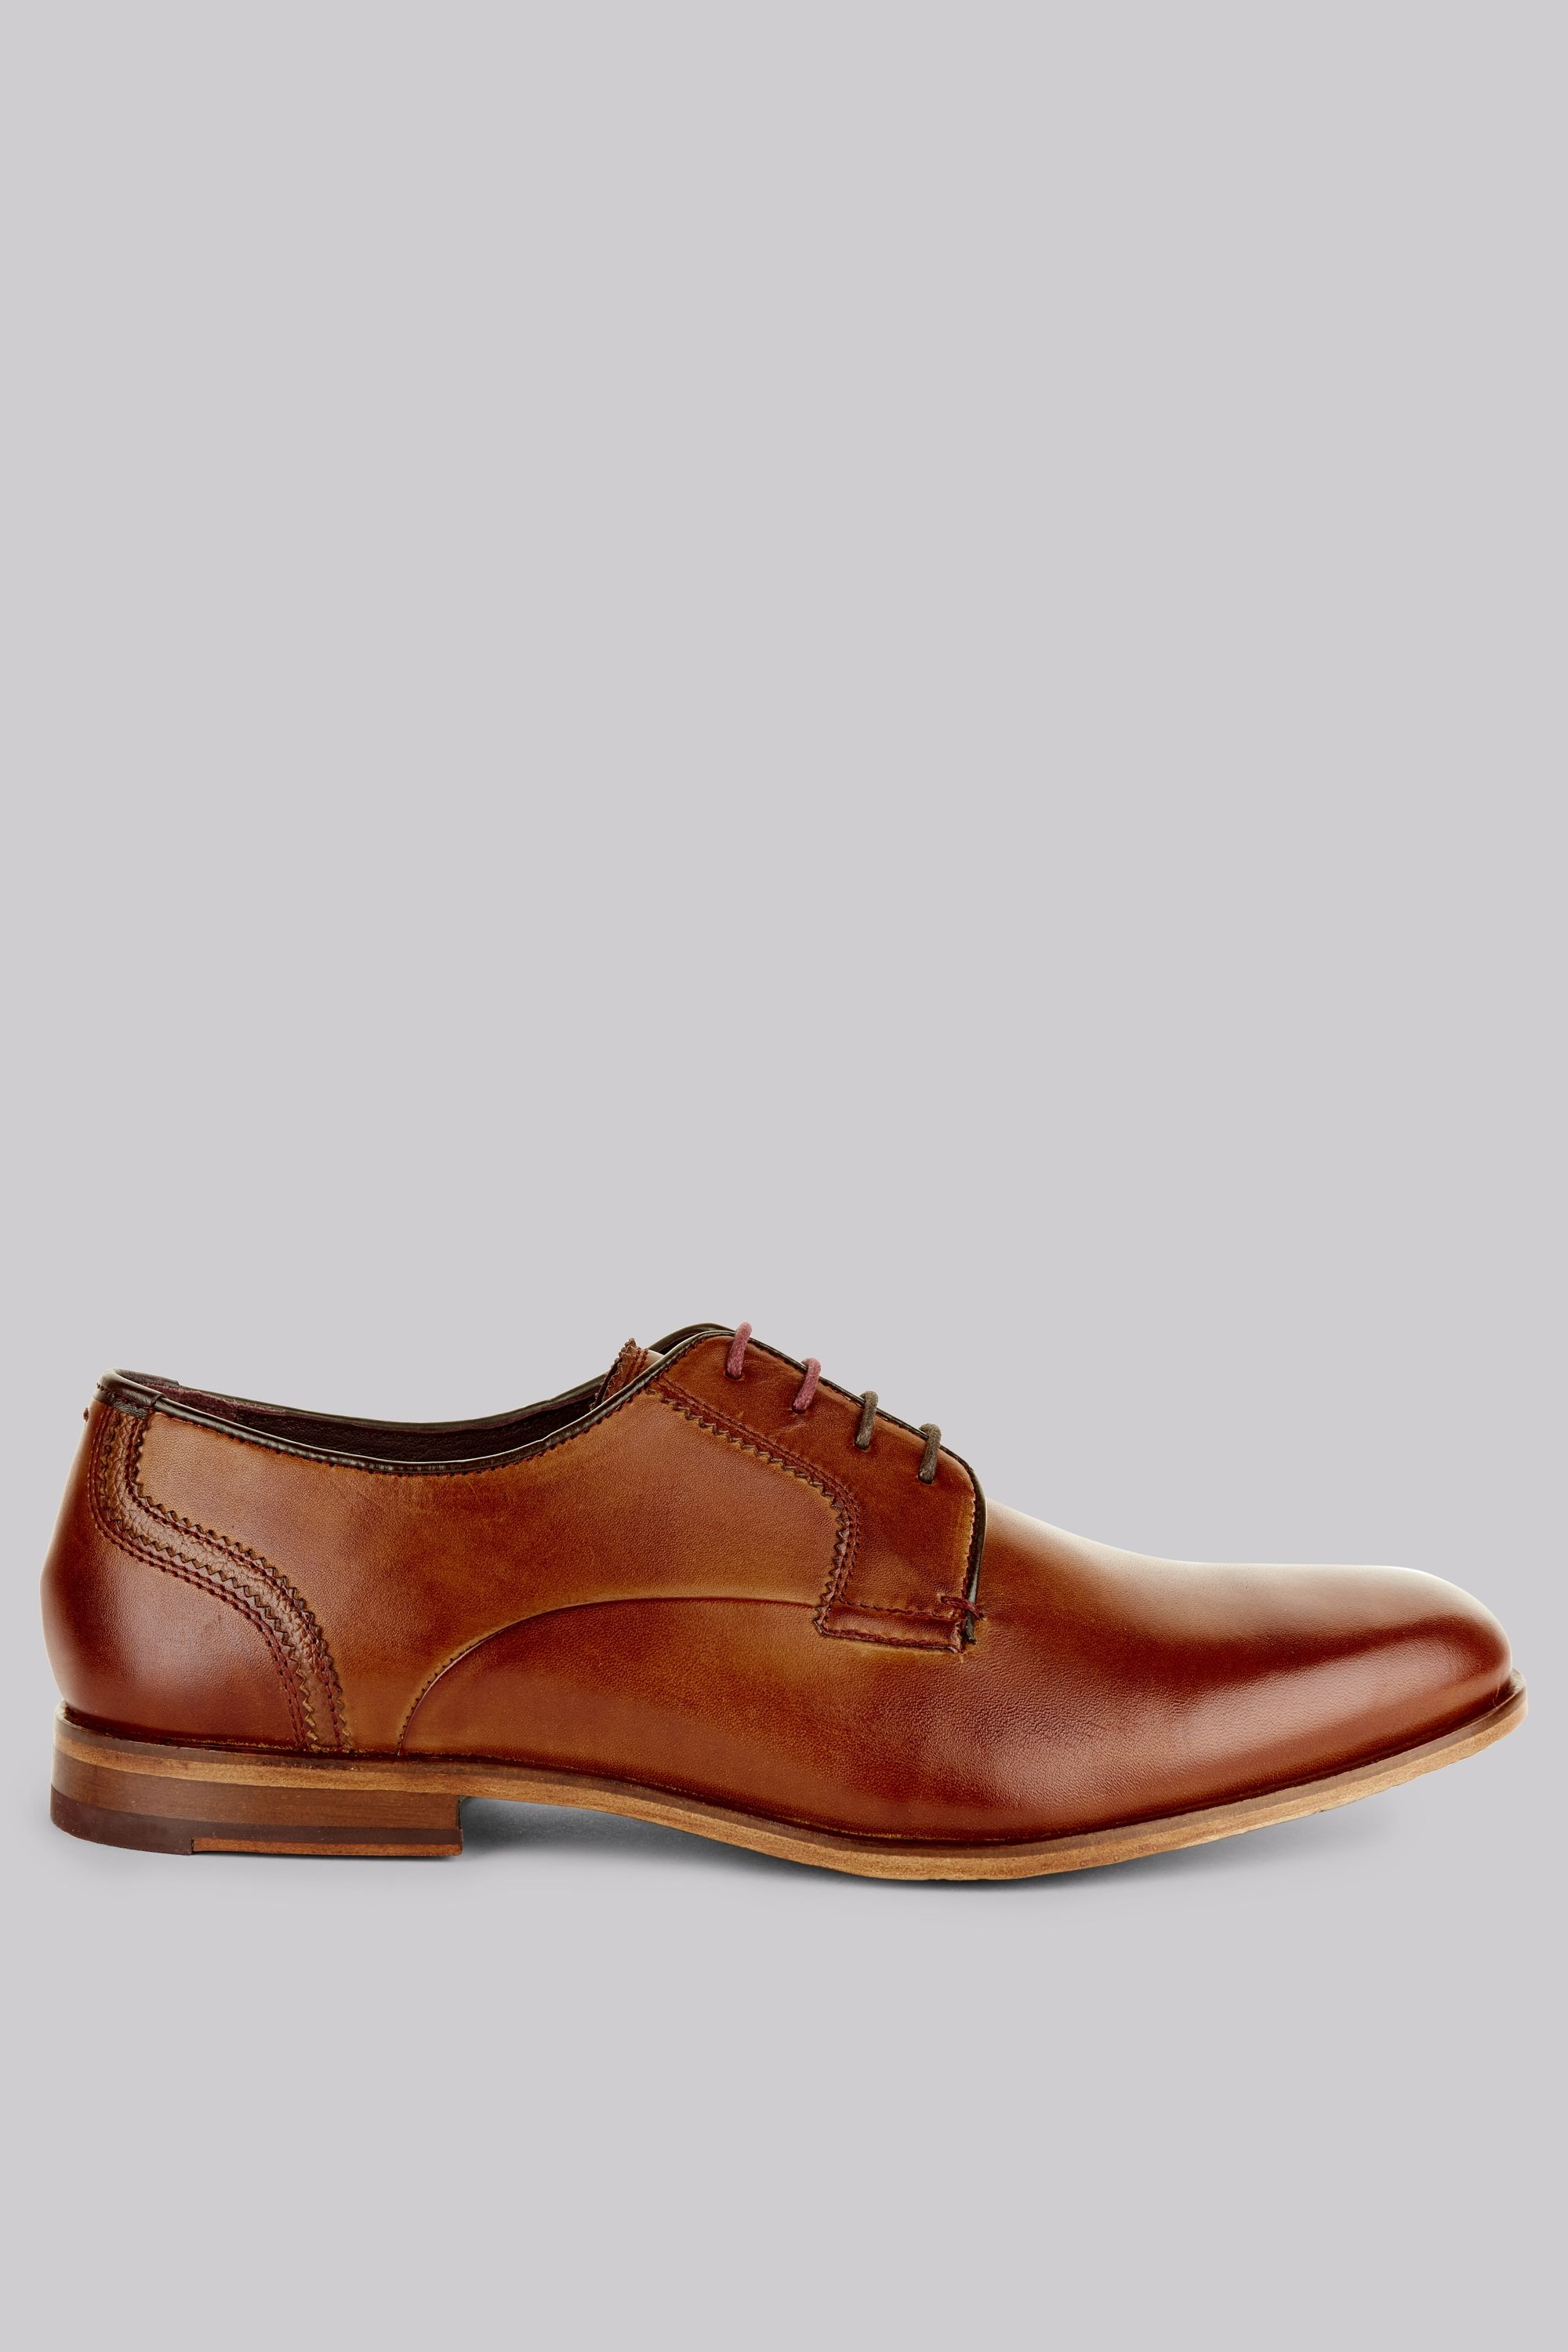 Ted Baker Iront Tan Derby Shoes What do they say about men with great shoes?